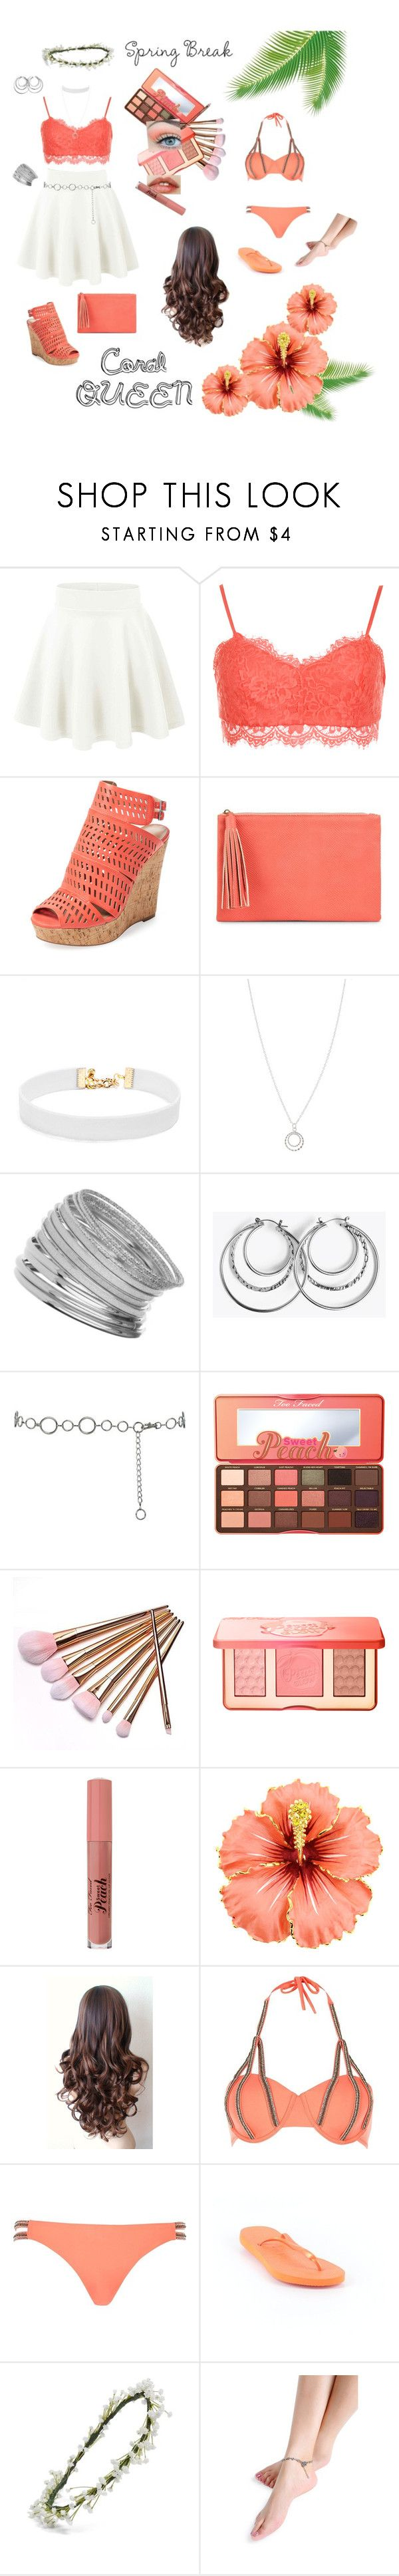 """""""Spring Break ~ Coral Queen"""" by trin101915 ❤ liked on Polyvore featuring WearAll, Charles by Charles David, Jessica McClintock, Vanessa Mooney, Accessorize, Miss Selfridge, M&Co, Too Faced Cosmetics, River Island and Havaianas"""